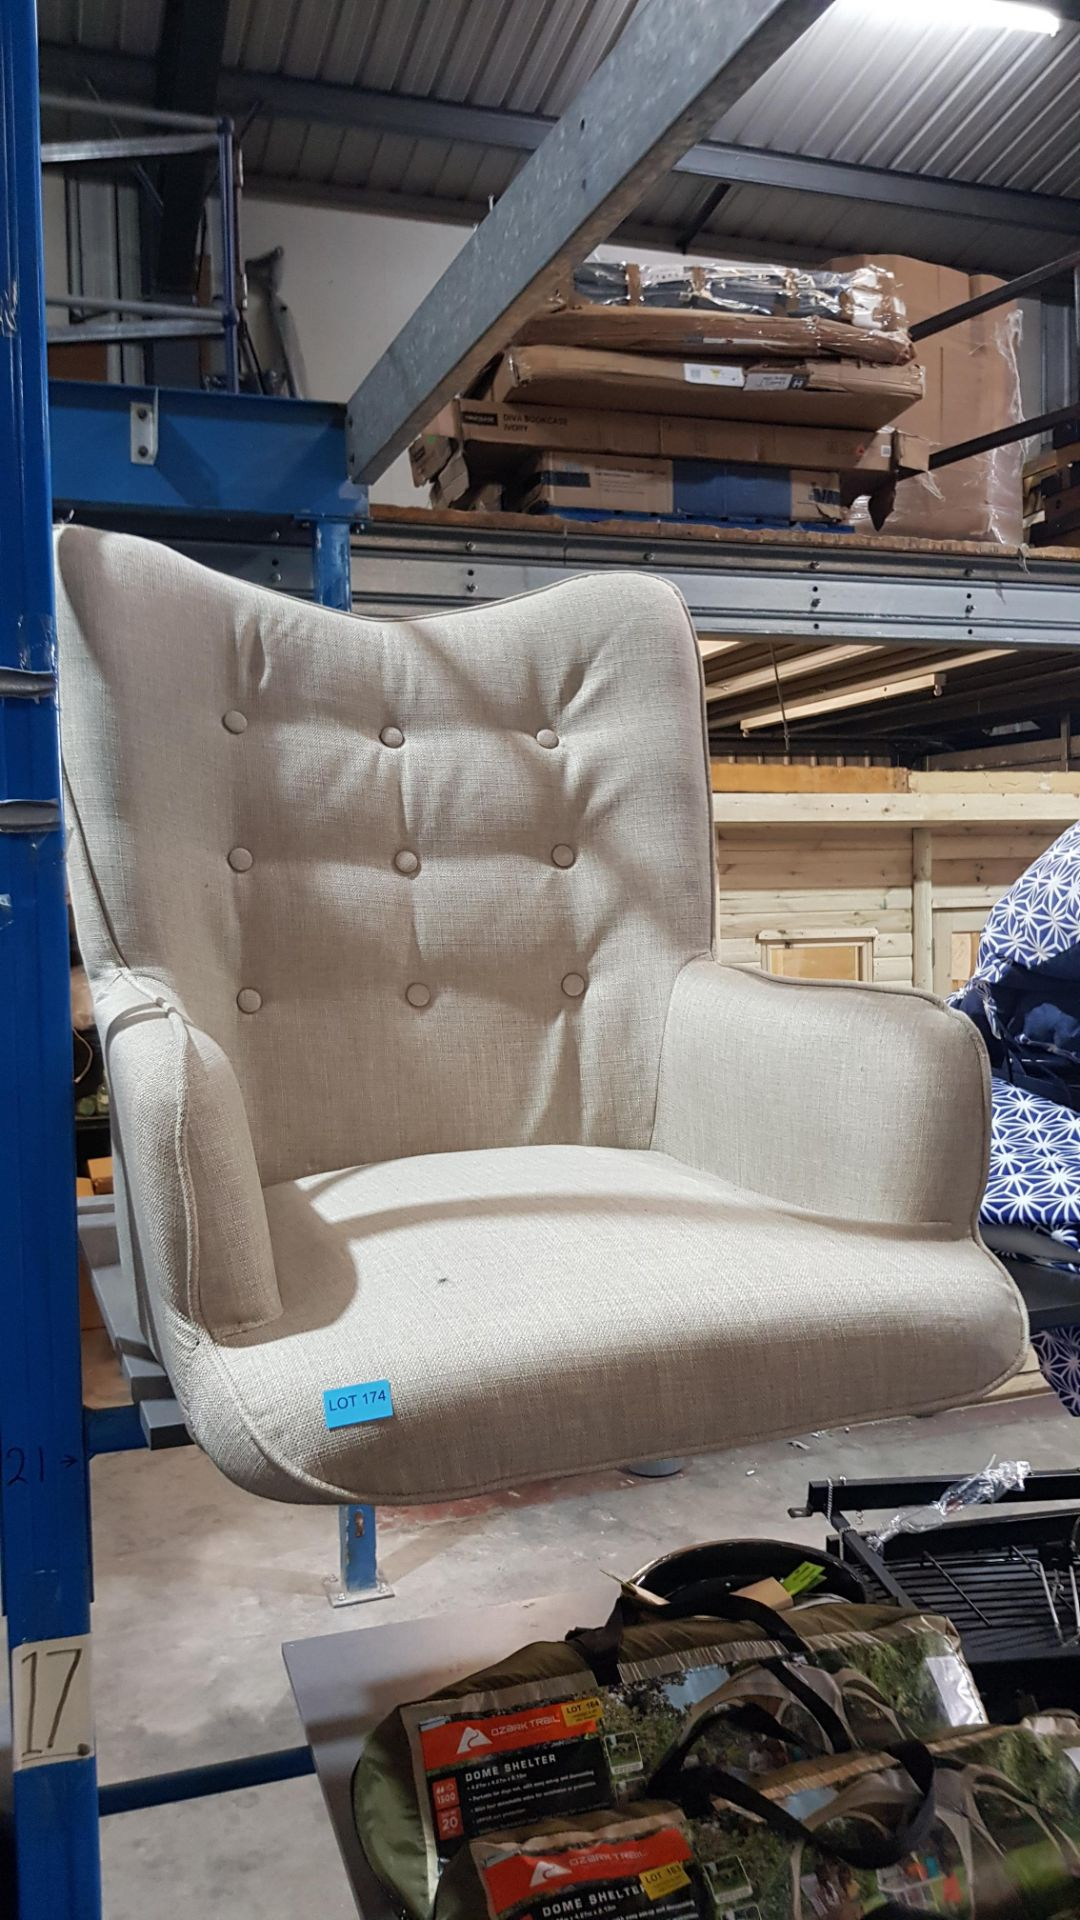 (2I) 2x Leon Beige Lounge Chairs (Only 1x Leg Set With This Lot). Both Units Appear Clean, Unused. - Image 5 of 7